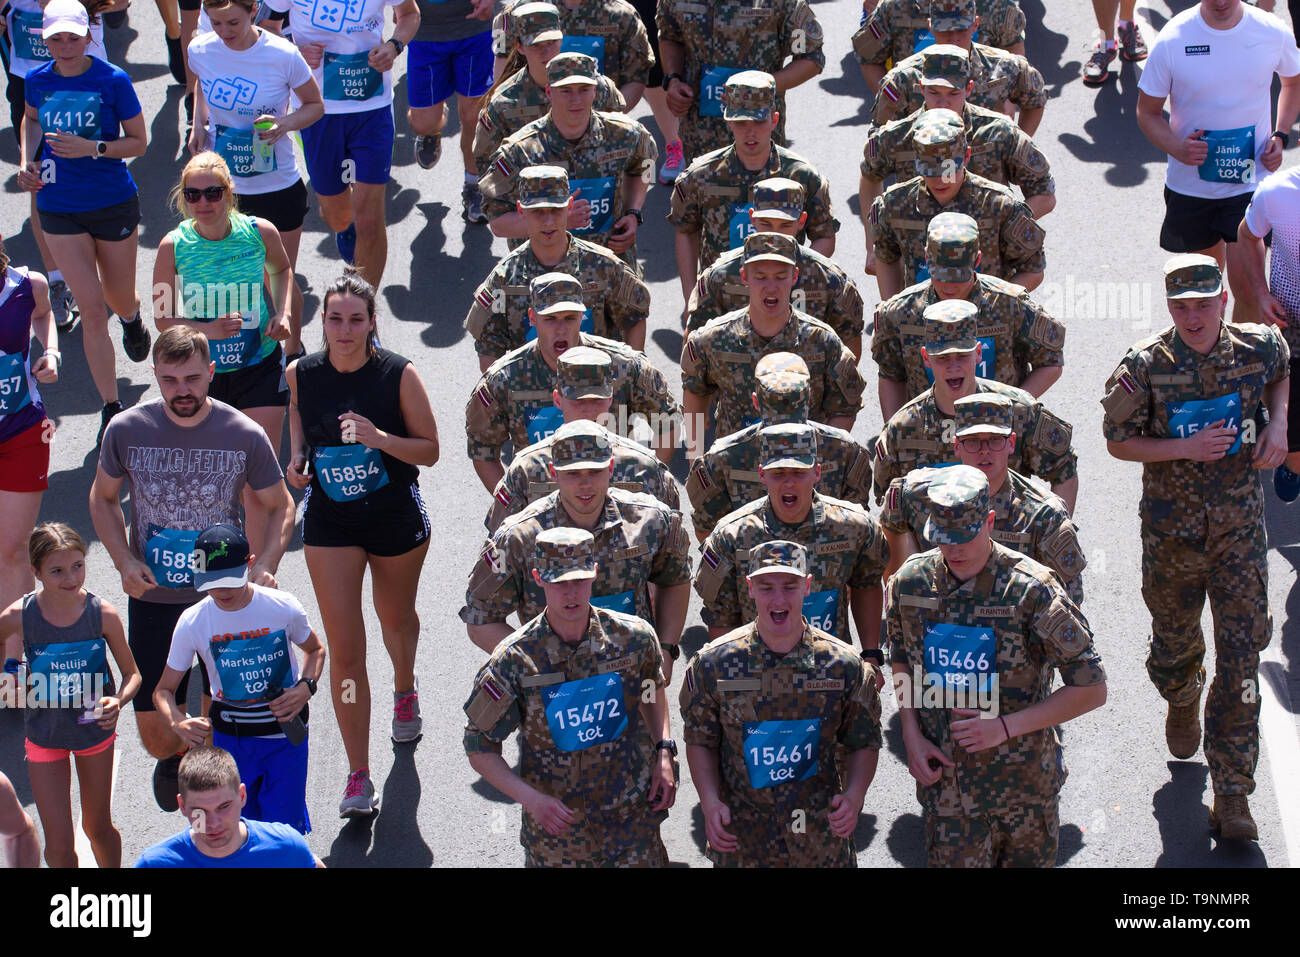 19.05.2019. RIGA, LATVIA. Latvian army soldiers compete at  TET RIGA MARATHON 2019. The only IAAF Gold Label marathon in Northern Europe. Stock Photo